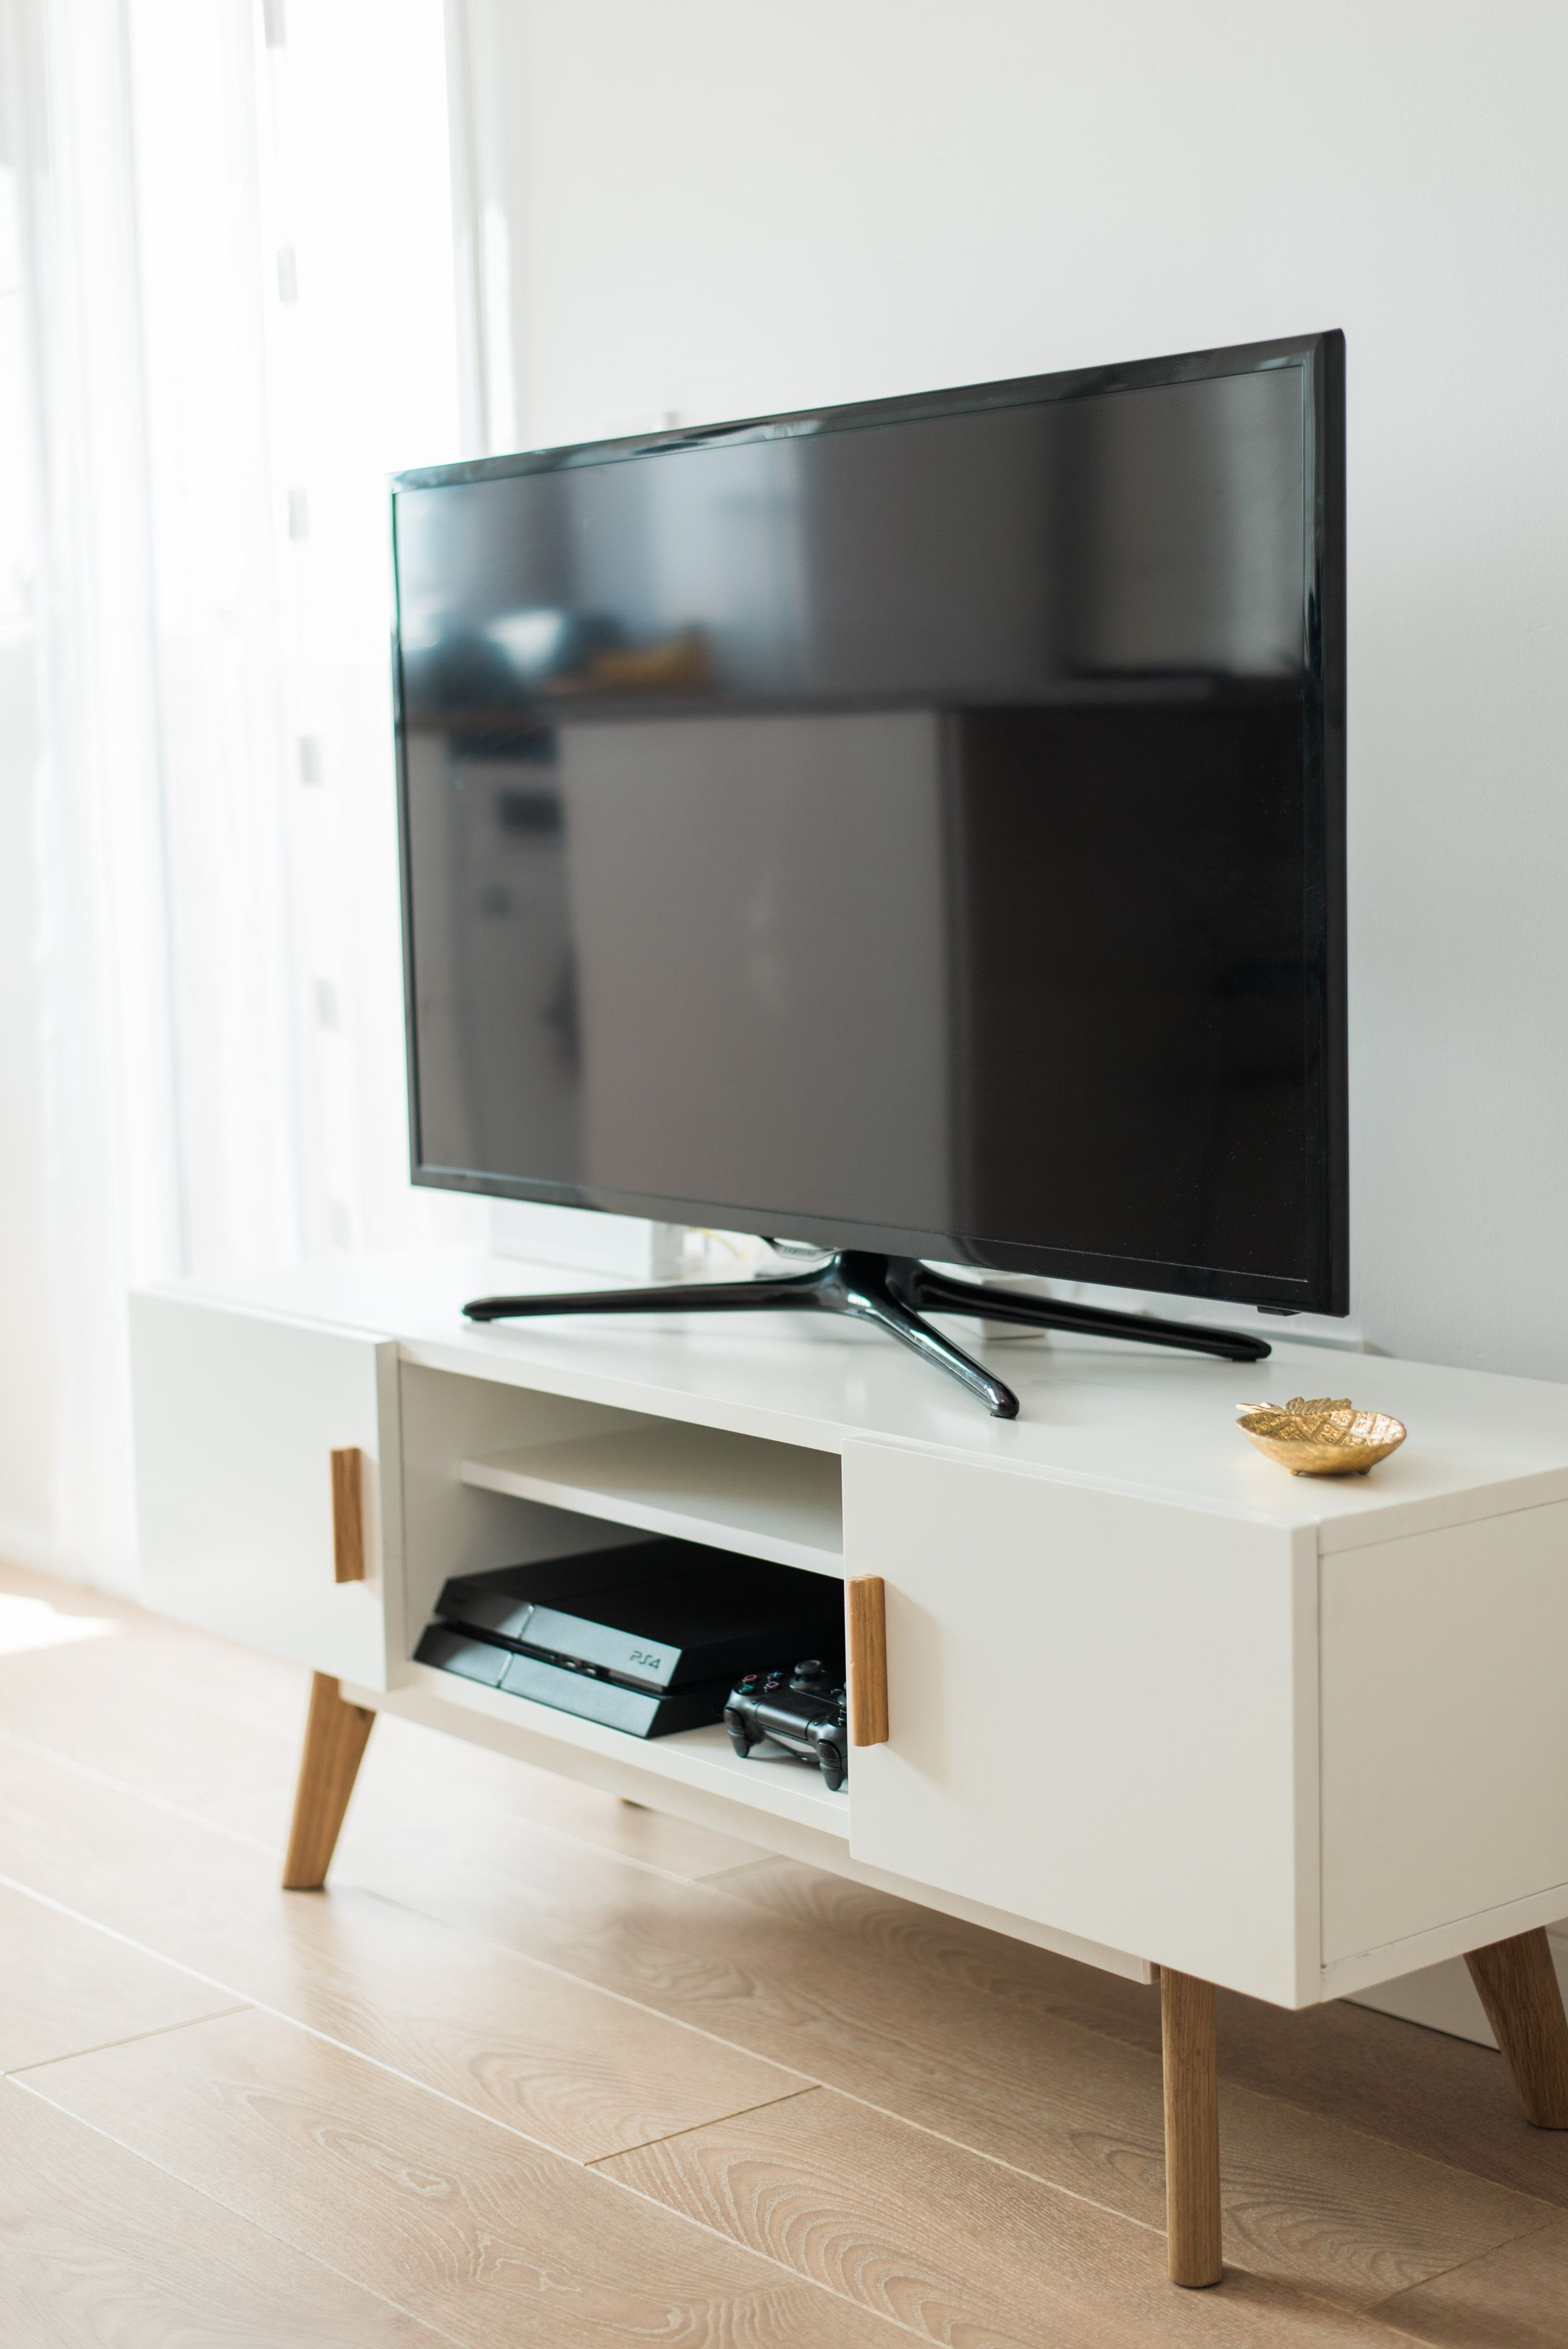 tv rooms furniture. White TV Unit #Scandinavian #home #furniture Http://abreo.co.uk/living- Room-furniture/modern-living-room-furniture/scandinavian-style-white-tv-unit Tv Rooms Furniture R